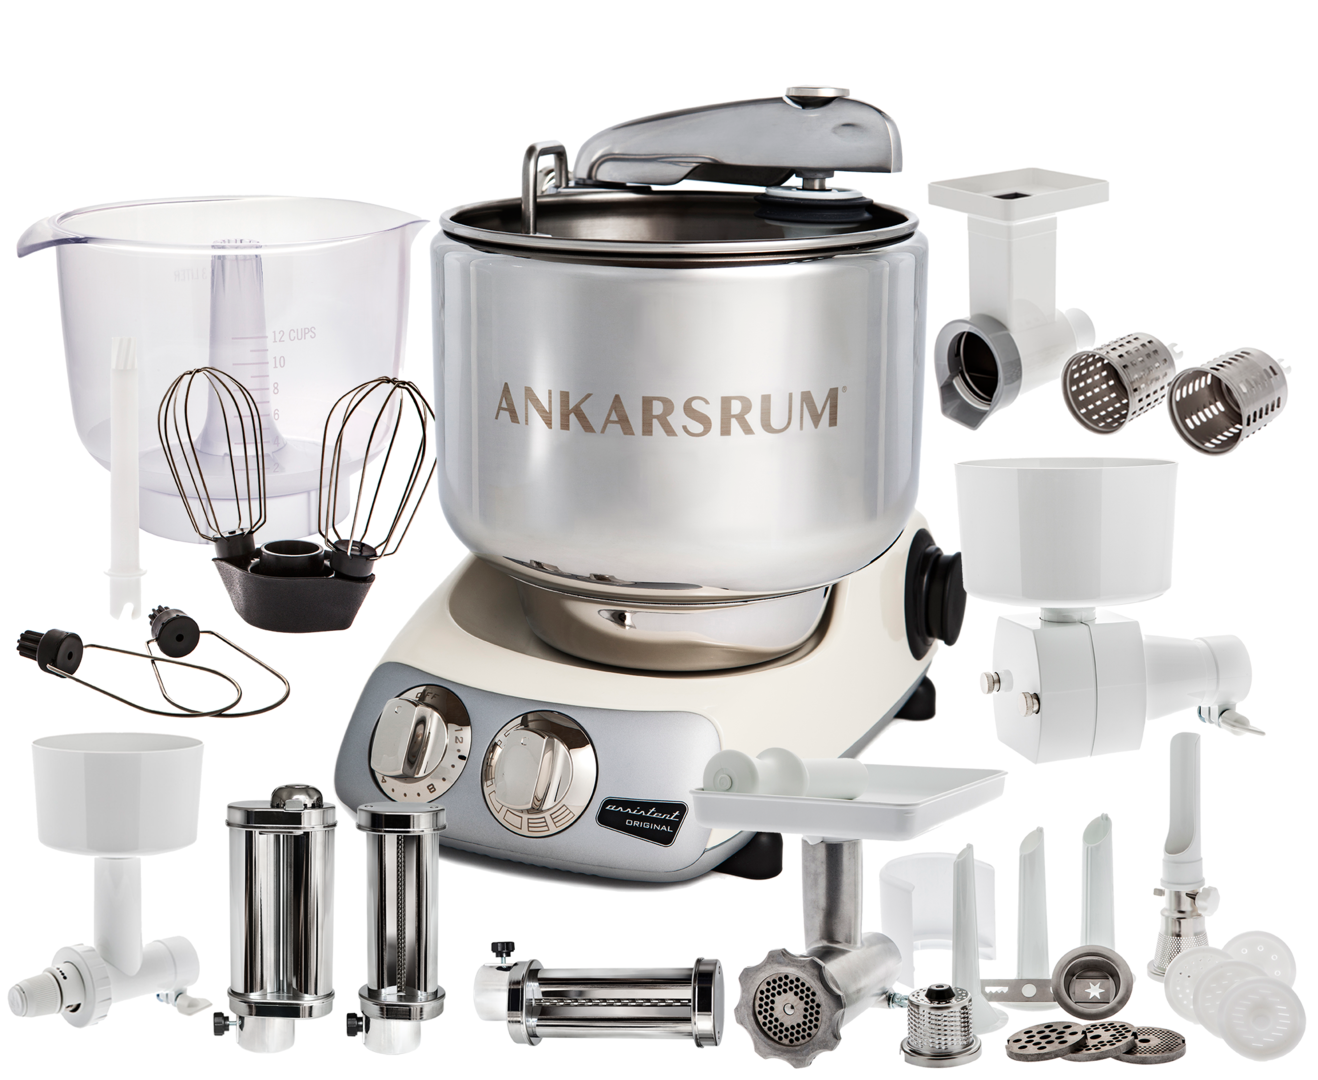 Ankarsrum Original AKM6220CL Total mixer, Creme light (2300110)